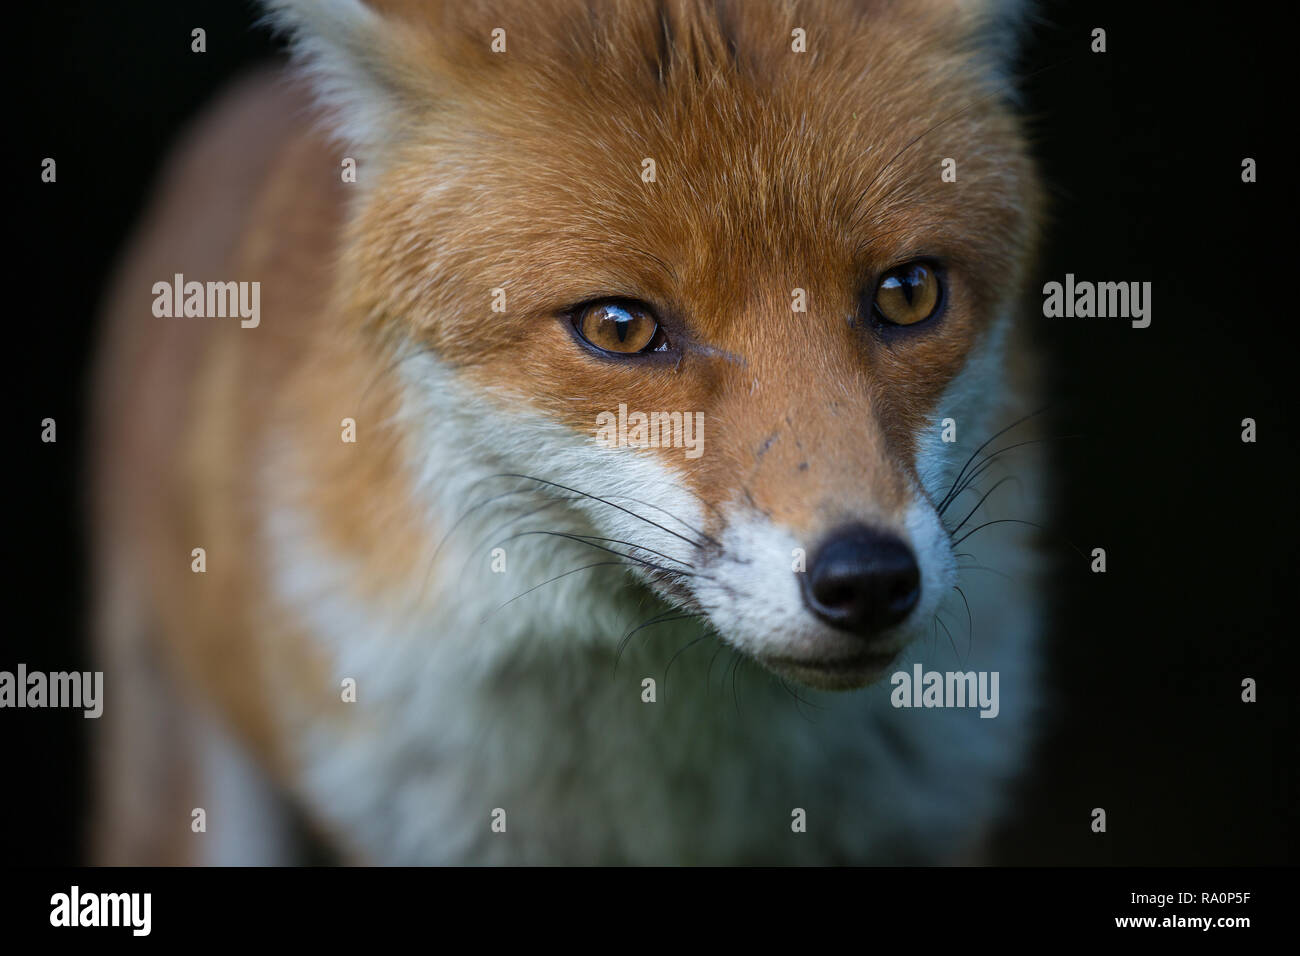 A Red fox portrait with a black background in London. - Stock Image